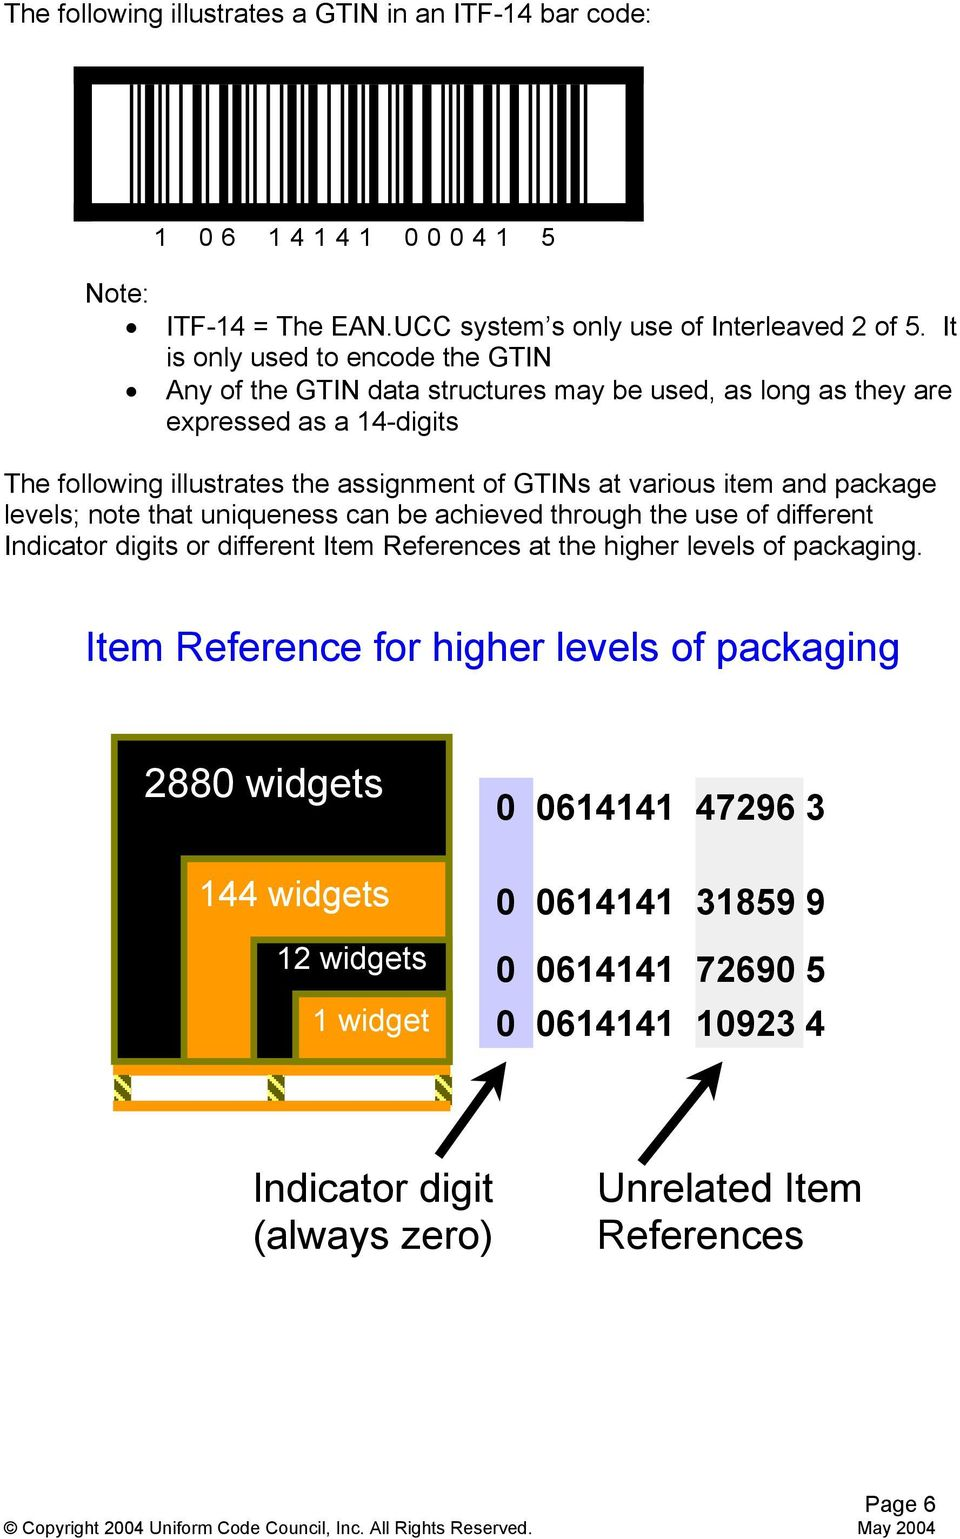 various item and package levels; note that uniqueness can be achieved through the use of different Indicator digits or different Item References at the higher levels of packaging.